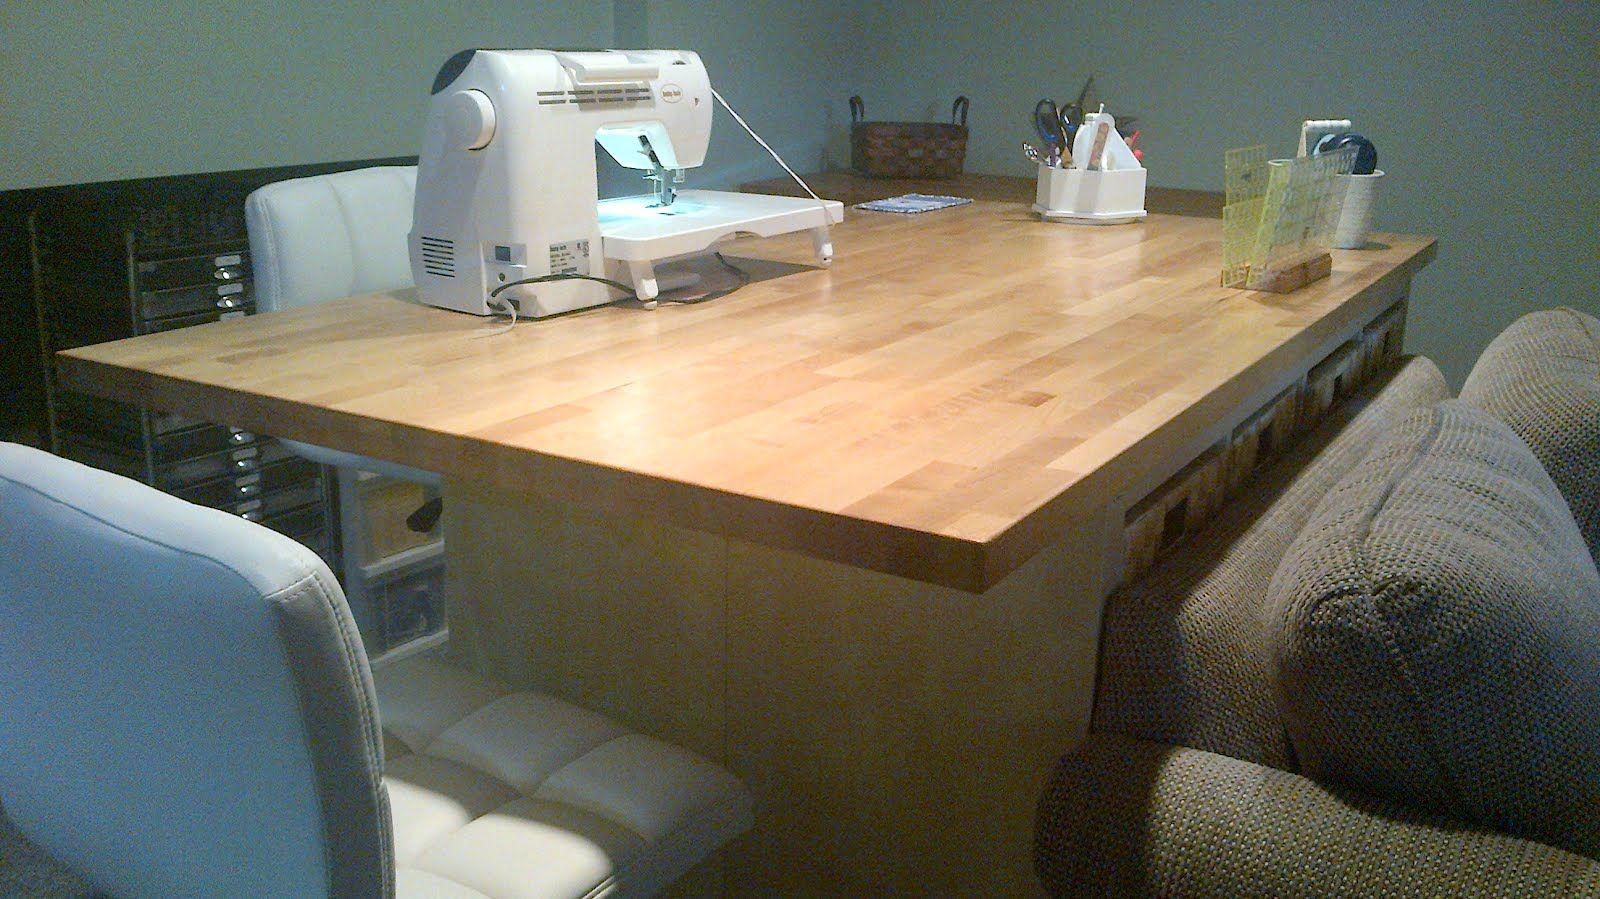 index quilt sewing et extension table quilting tables